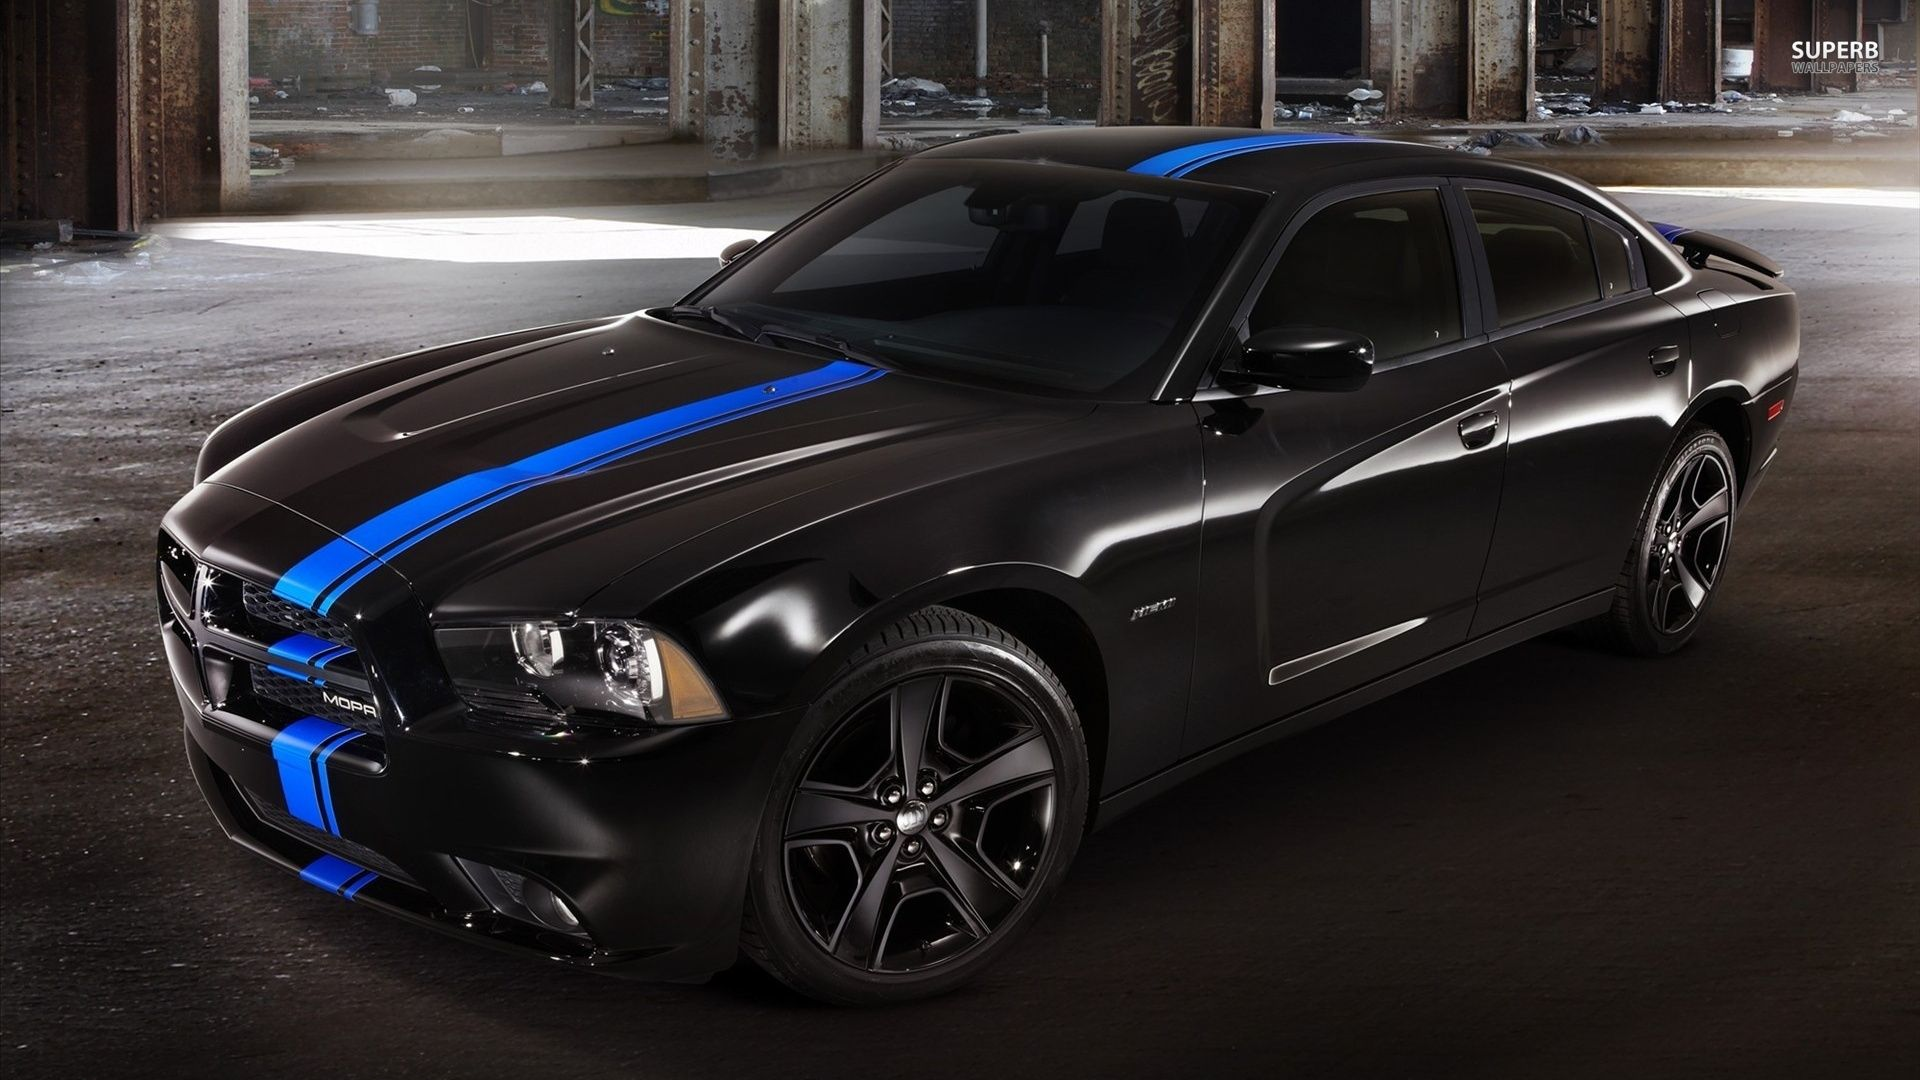 013 Dodge Charger Full HD Wallpaper is hd wallpaper for